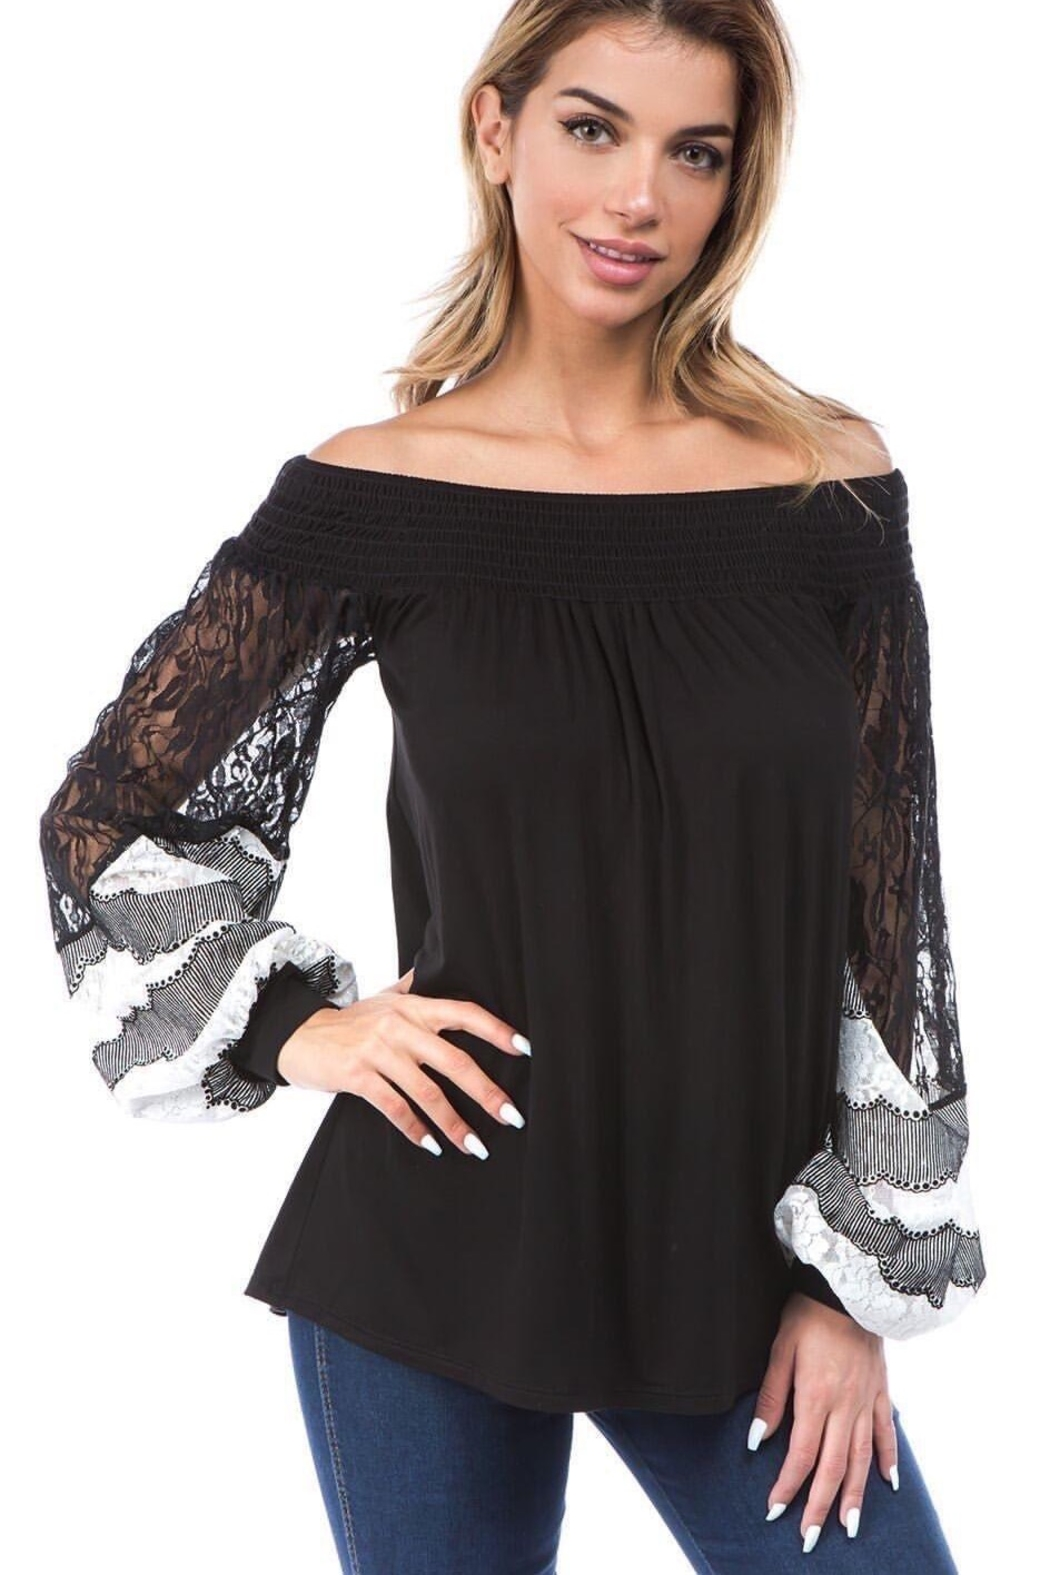 Vava by Joy Hahn Off Shoulder With Lace Arm Top - Main Image